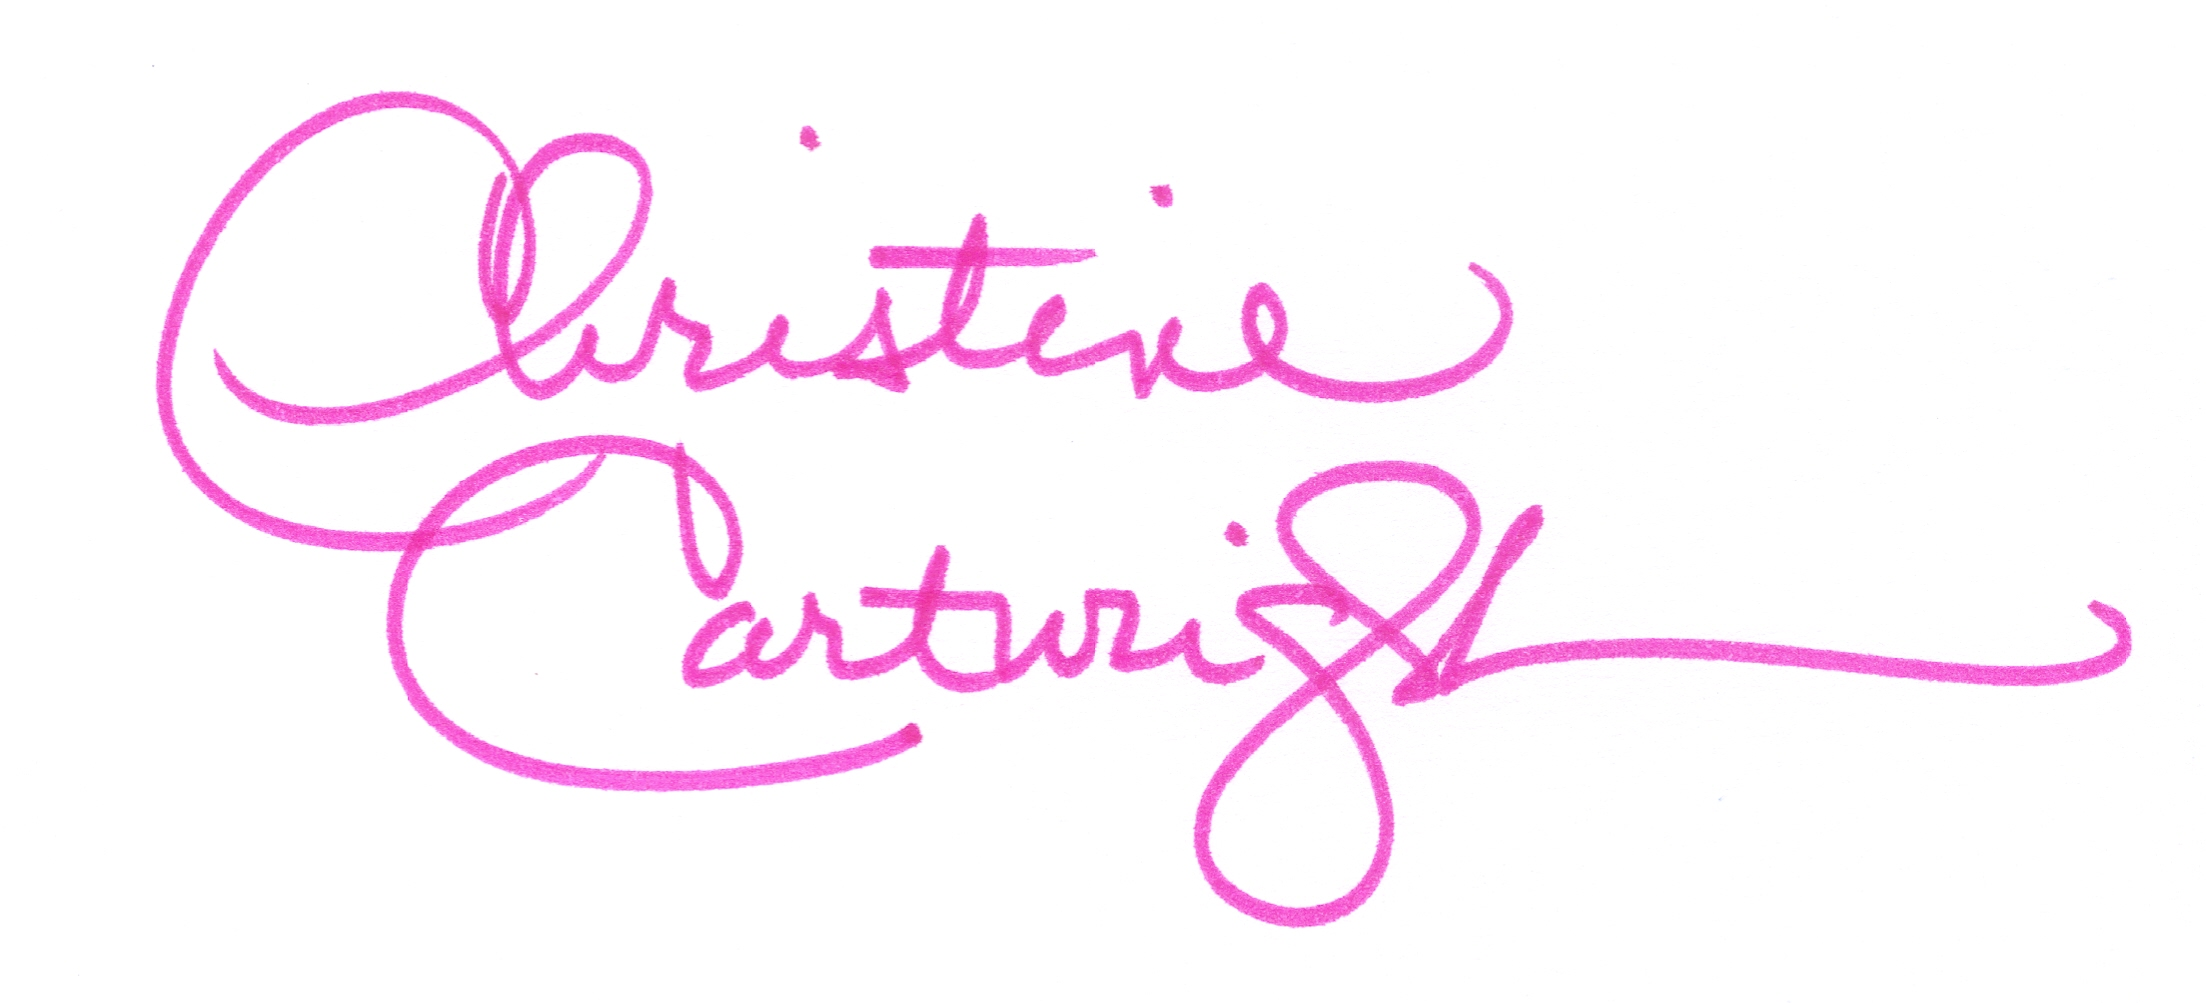 Christine Cartwright Signature